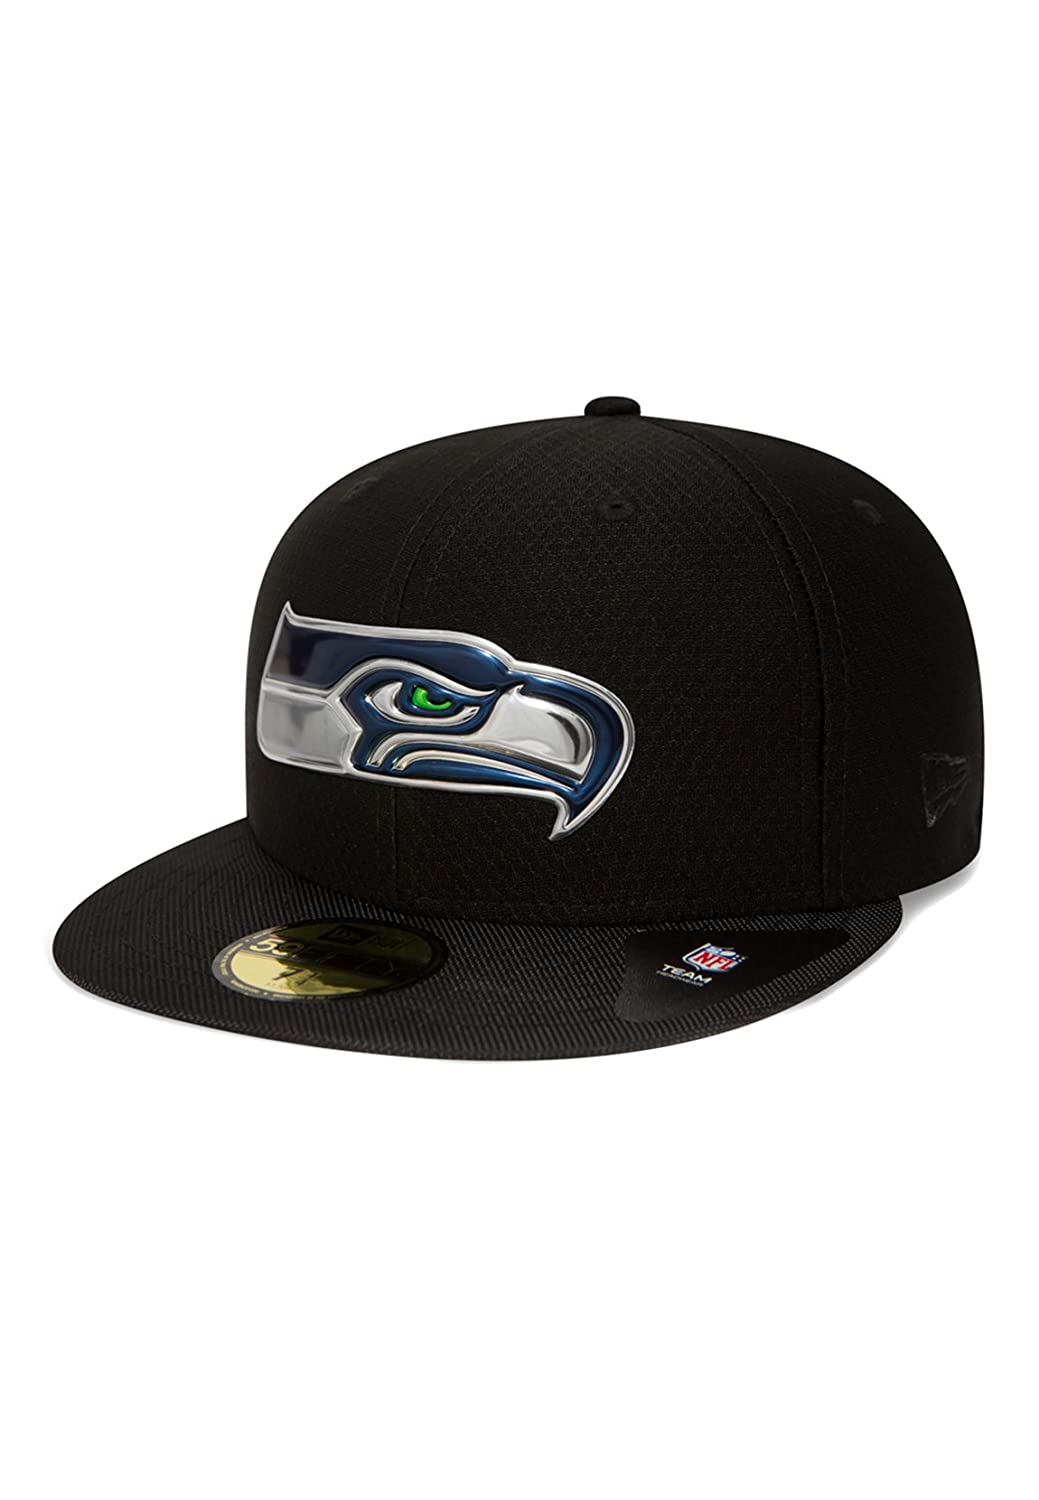 New Era Seattle Seahawks NFL Black Collection 59fifty 5950 Fitted Cap Basecap Kappe Mens